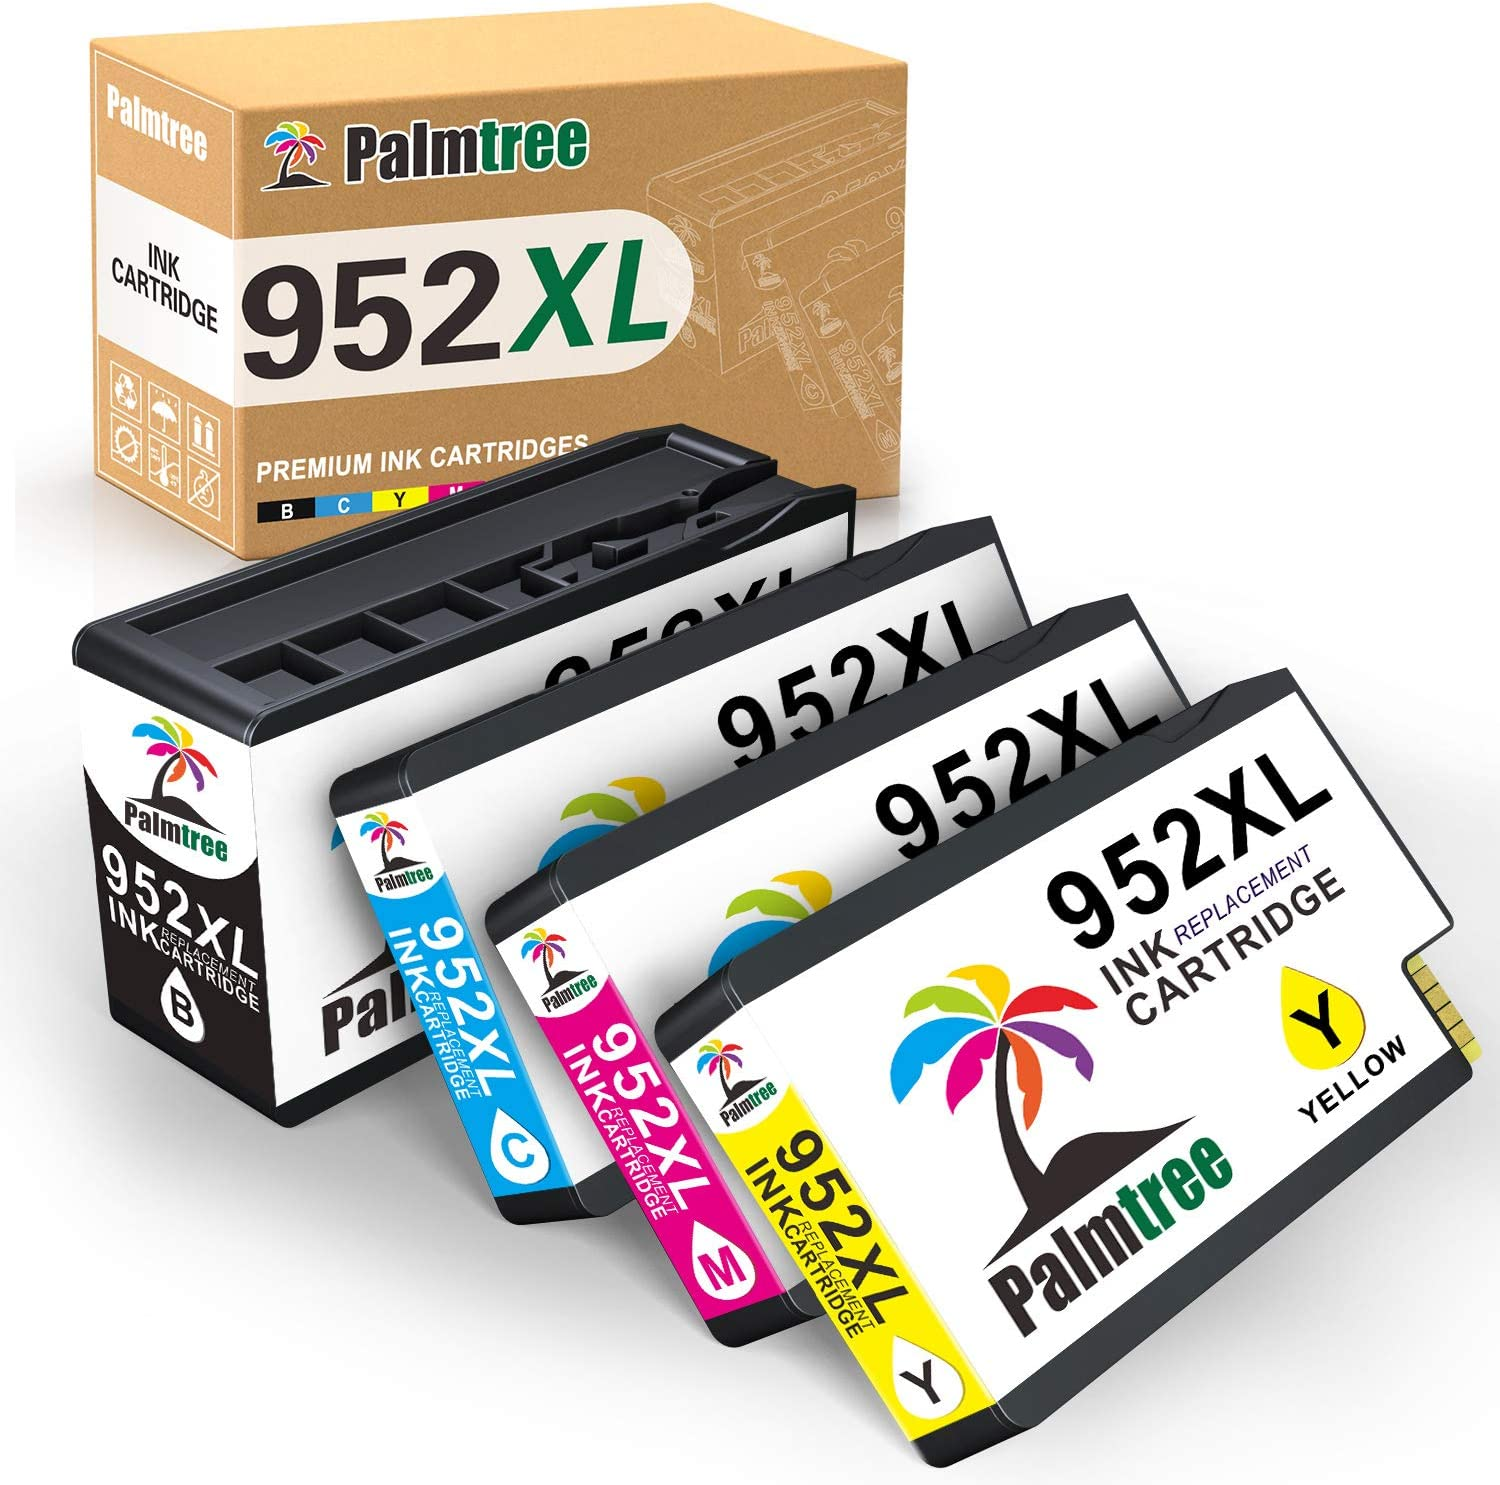 Palmtree Compatible Ink Cartridges Replacement for HP 952XL use with HP OfficeJet Pro 7740 7720 8702 8710 8715 8720 8725 8730 8740 8210 Printer, 4 Pack (1 Black, 1 Cyan, 1 Yellow, 1 Magenta)